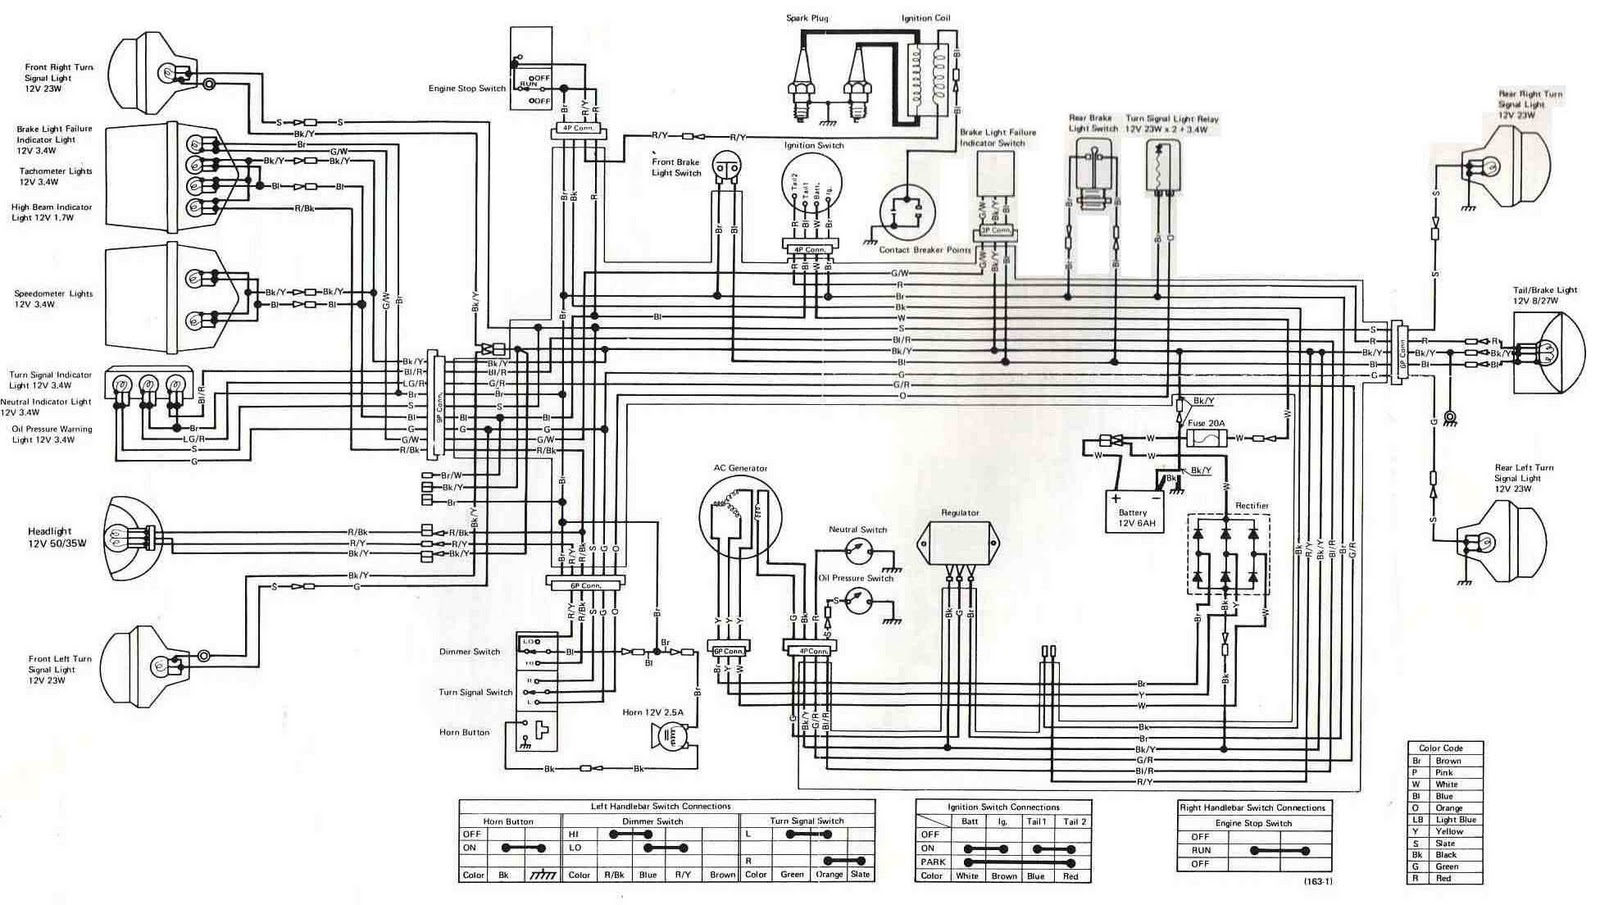 Kawasaki+KZ400+1975+Electrical+Wiring+Diagram kawasaki kz400 1975 electrical wiring diagram all about wiring kawasaki wiring diagram at gsmx.co